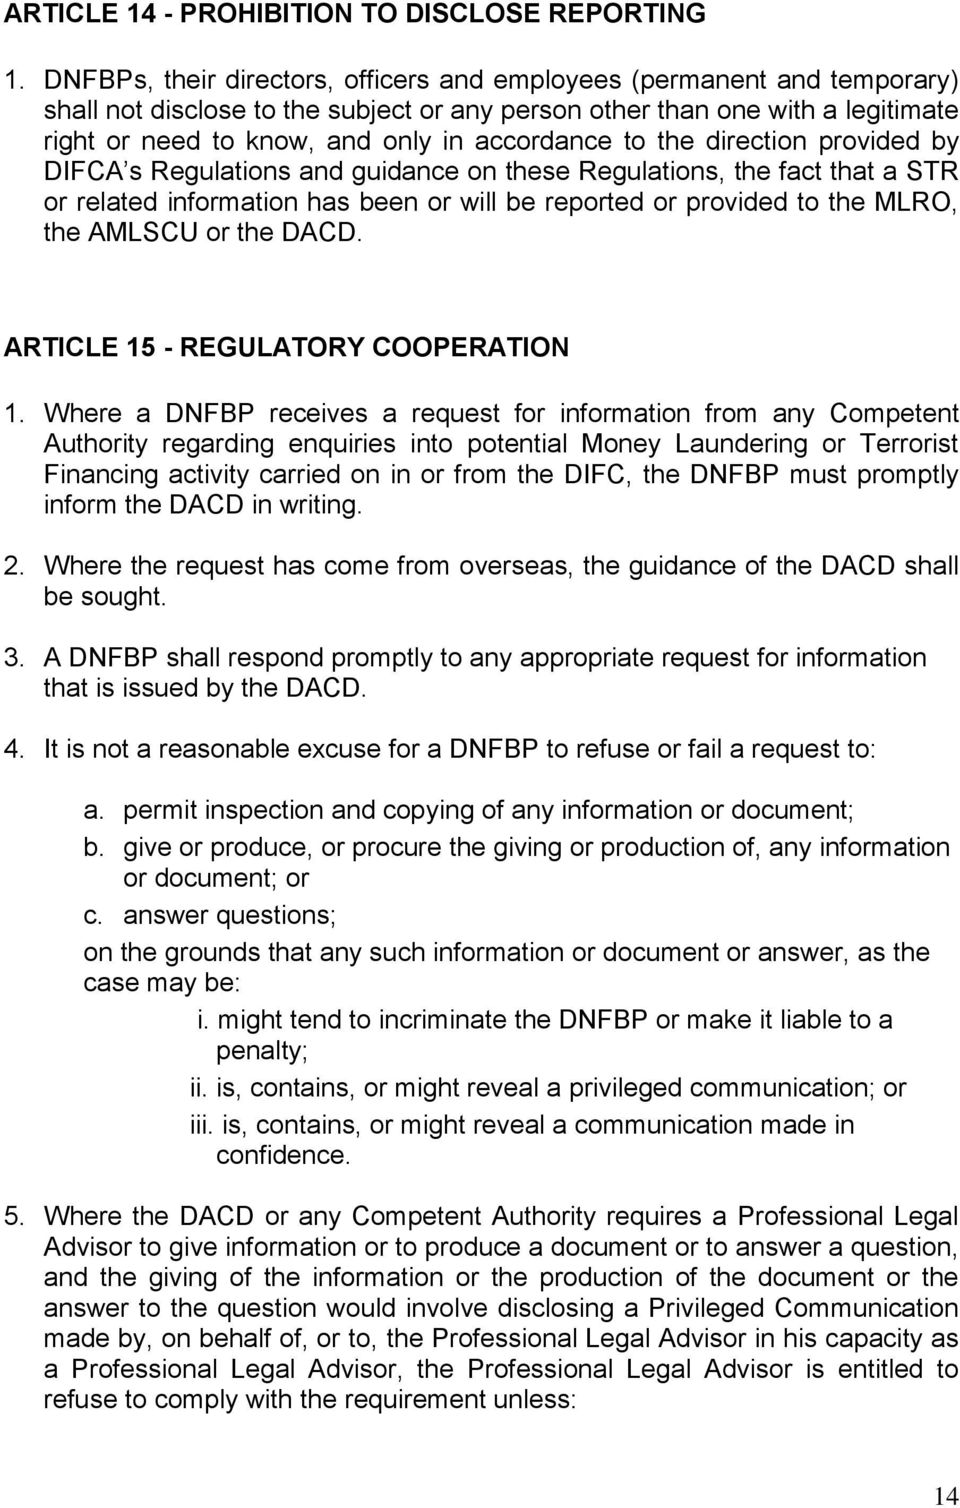 accordance to the direction provided by DIFCA s Regulations and guidance on these Regulations, the fact that a STR or related information has been or will be reported or provided to the MLRO, the